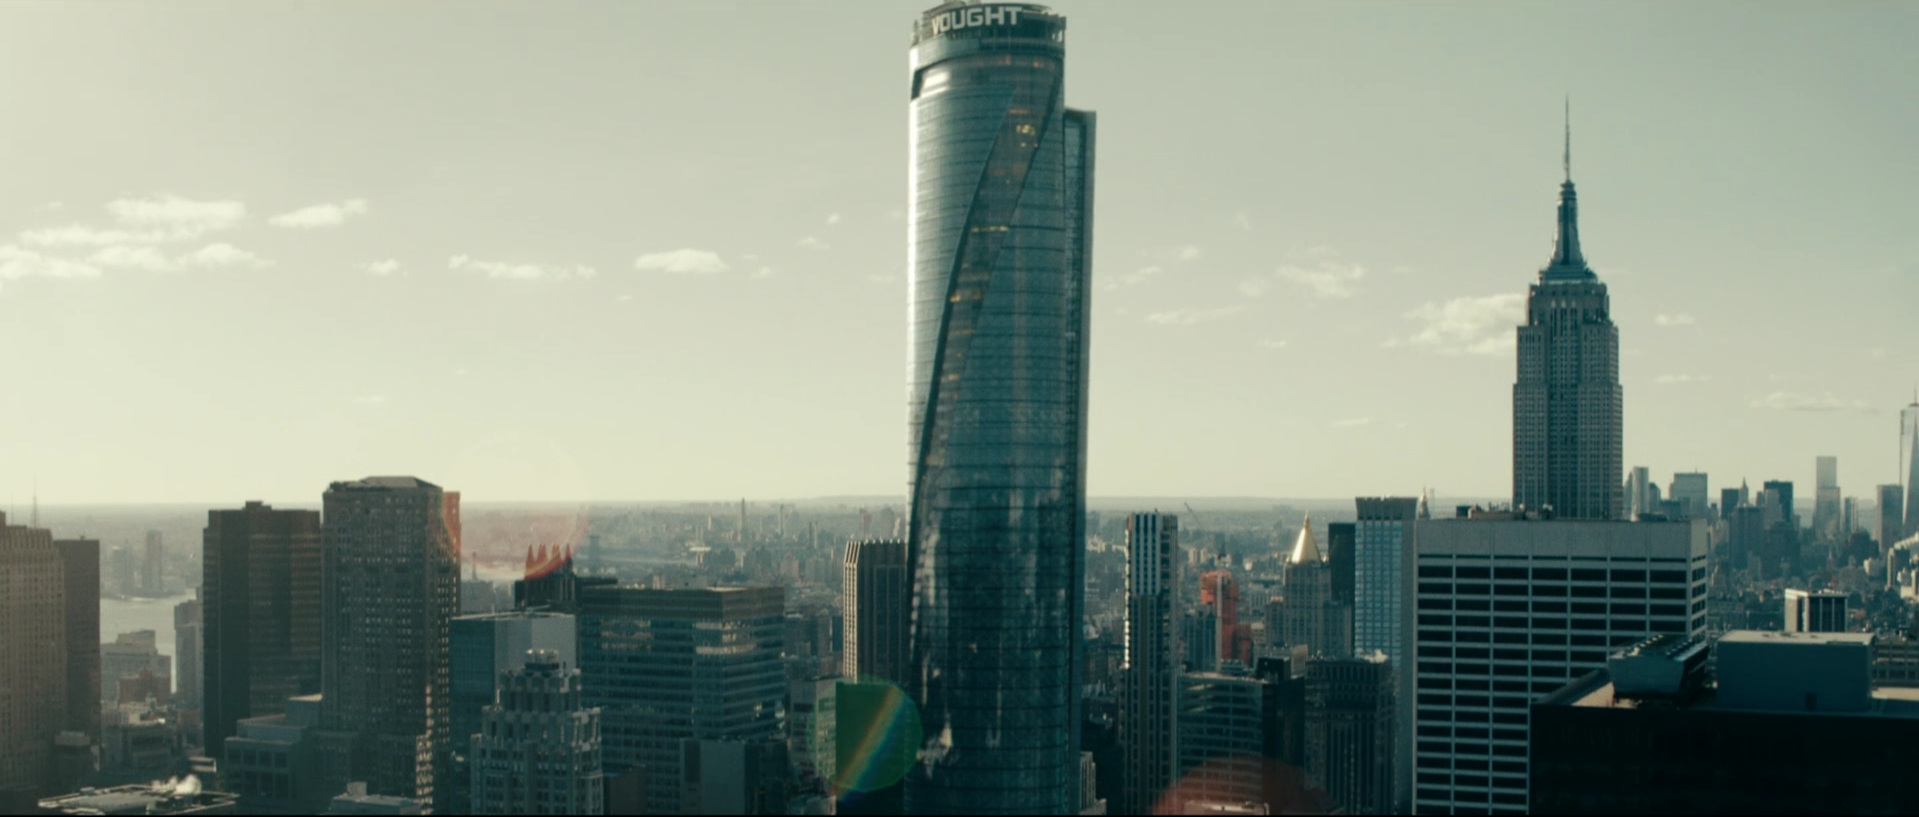 Tower-ing Fiction #10: The Seven/Vought Tower, The Boys (2019) — The Vault of Culture